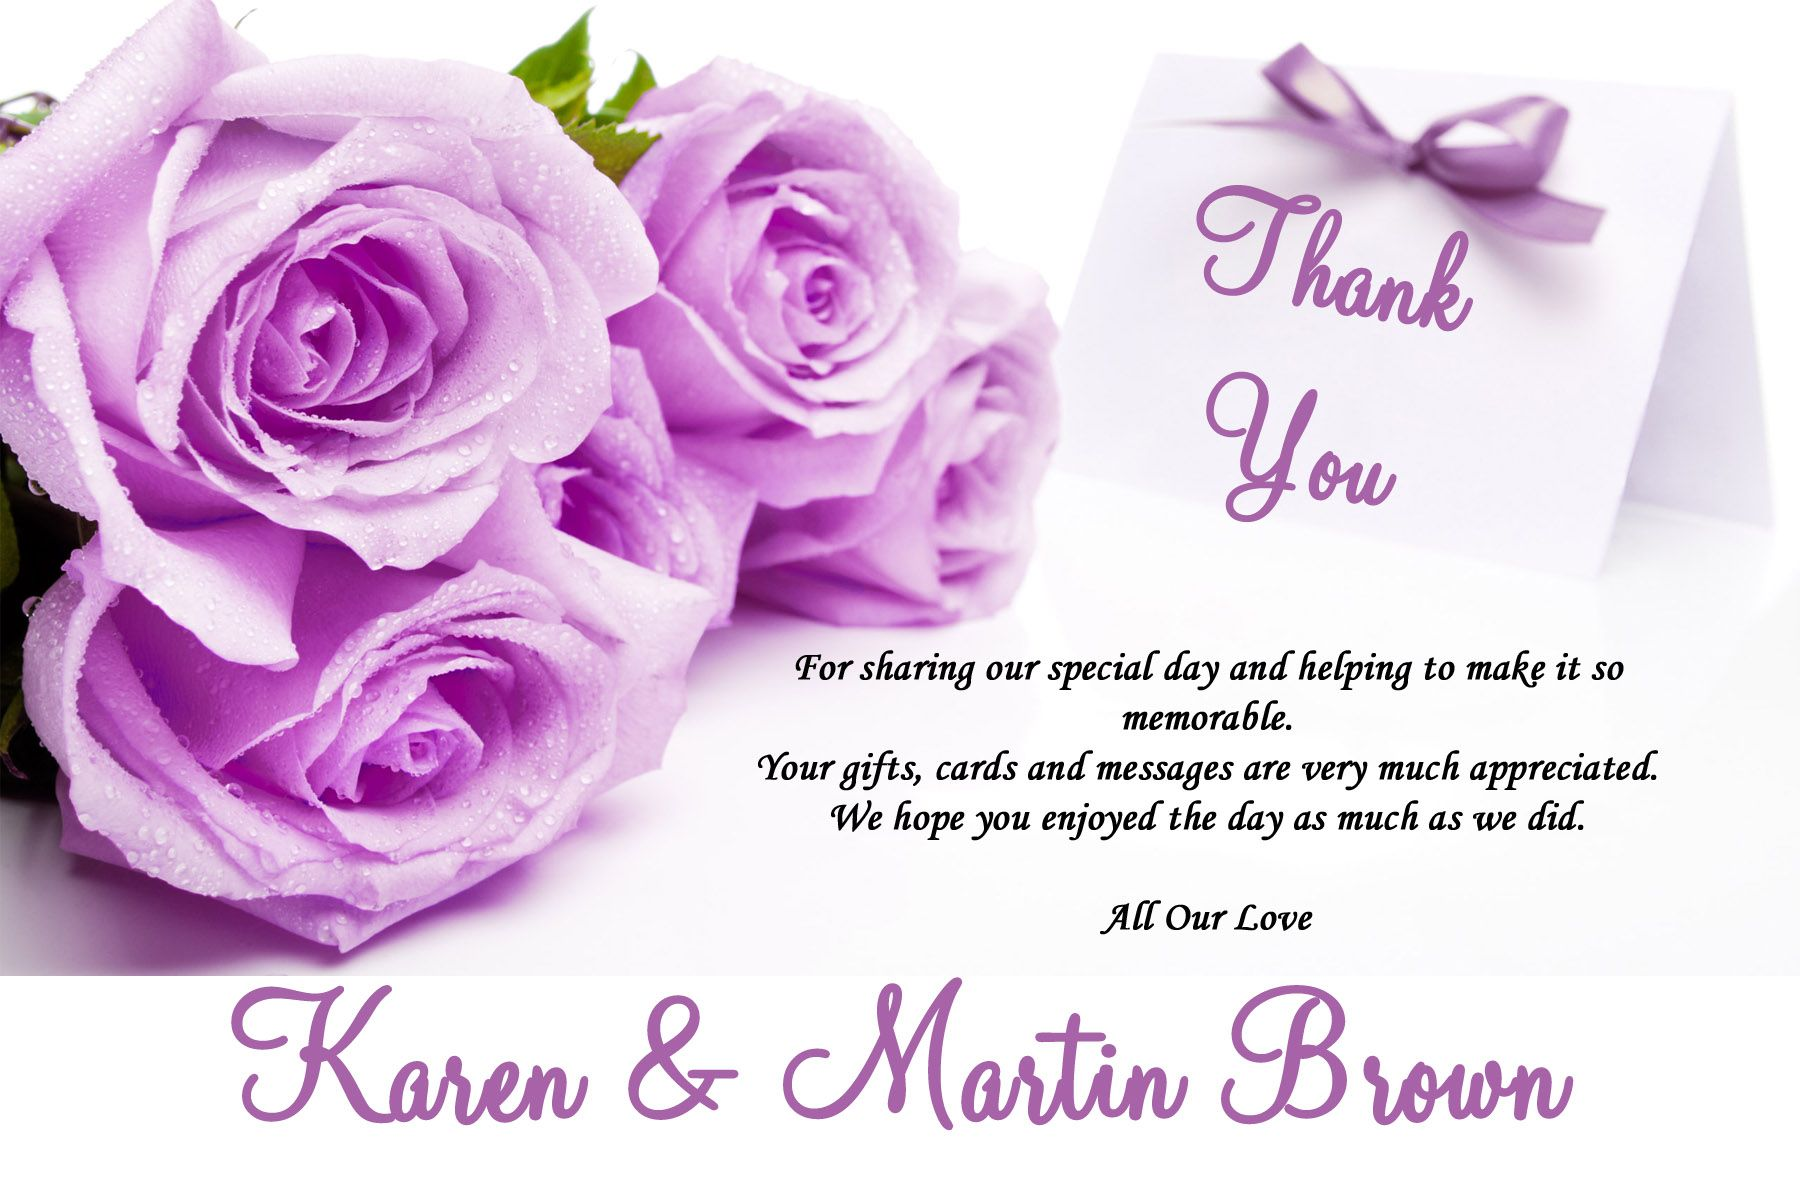 Beautiful Thank You Cards how to create thank you card designs templates ideas | thank you